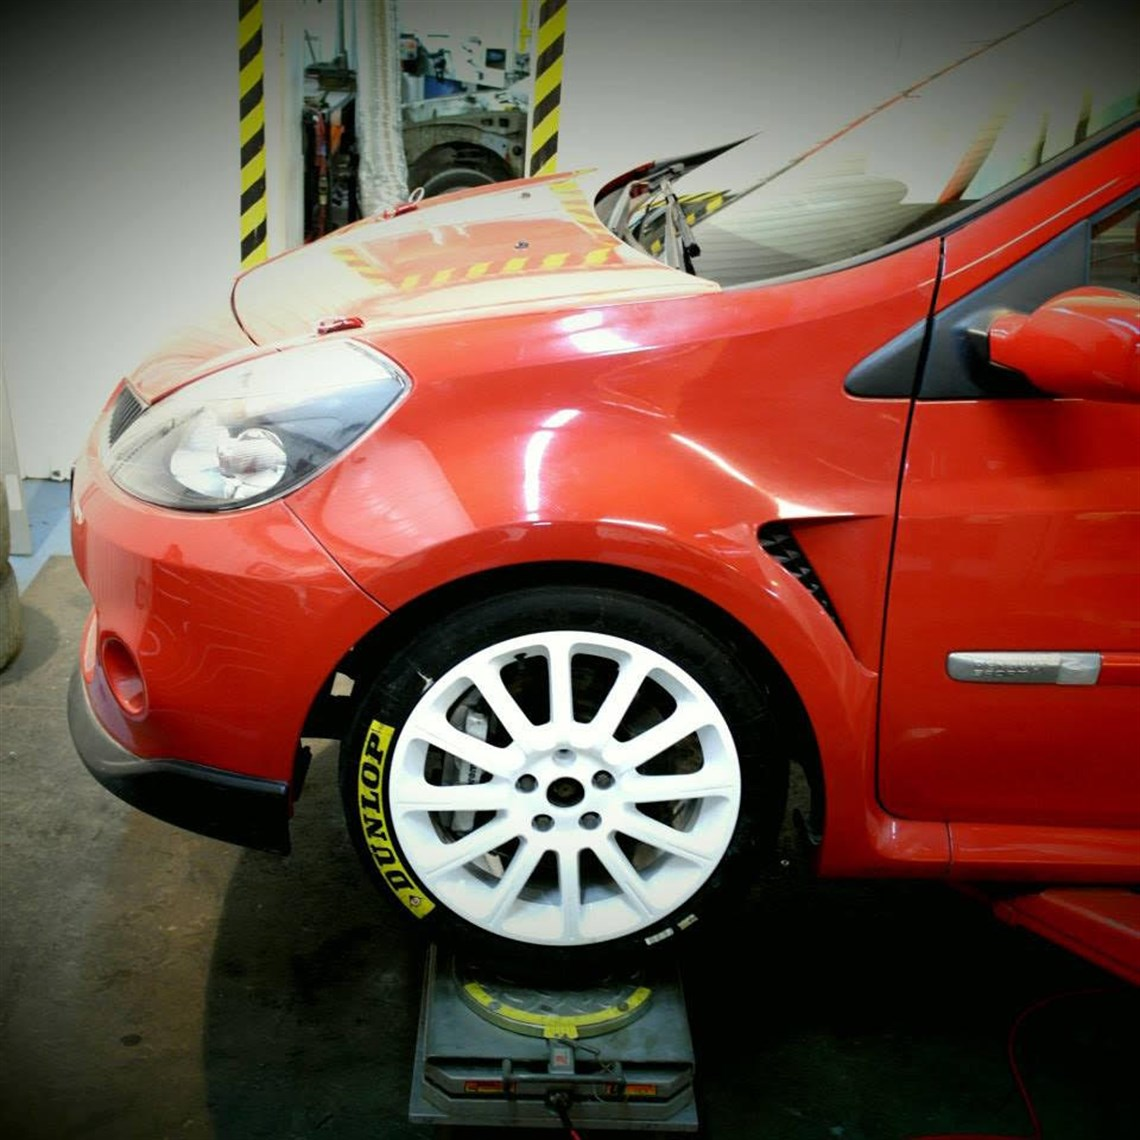 Racecarsdirect com - Renault Clio 3 RS Race /Rally Car, N spec